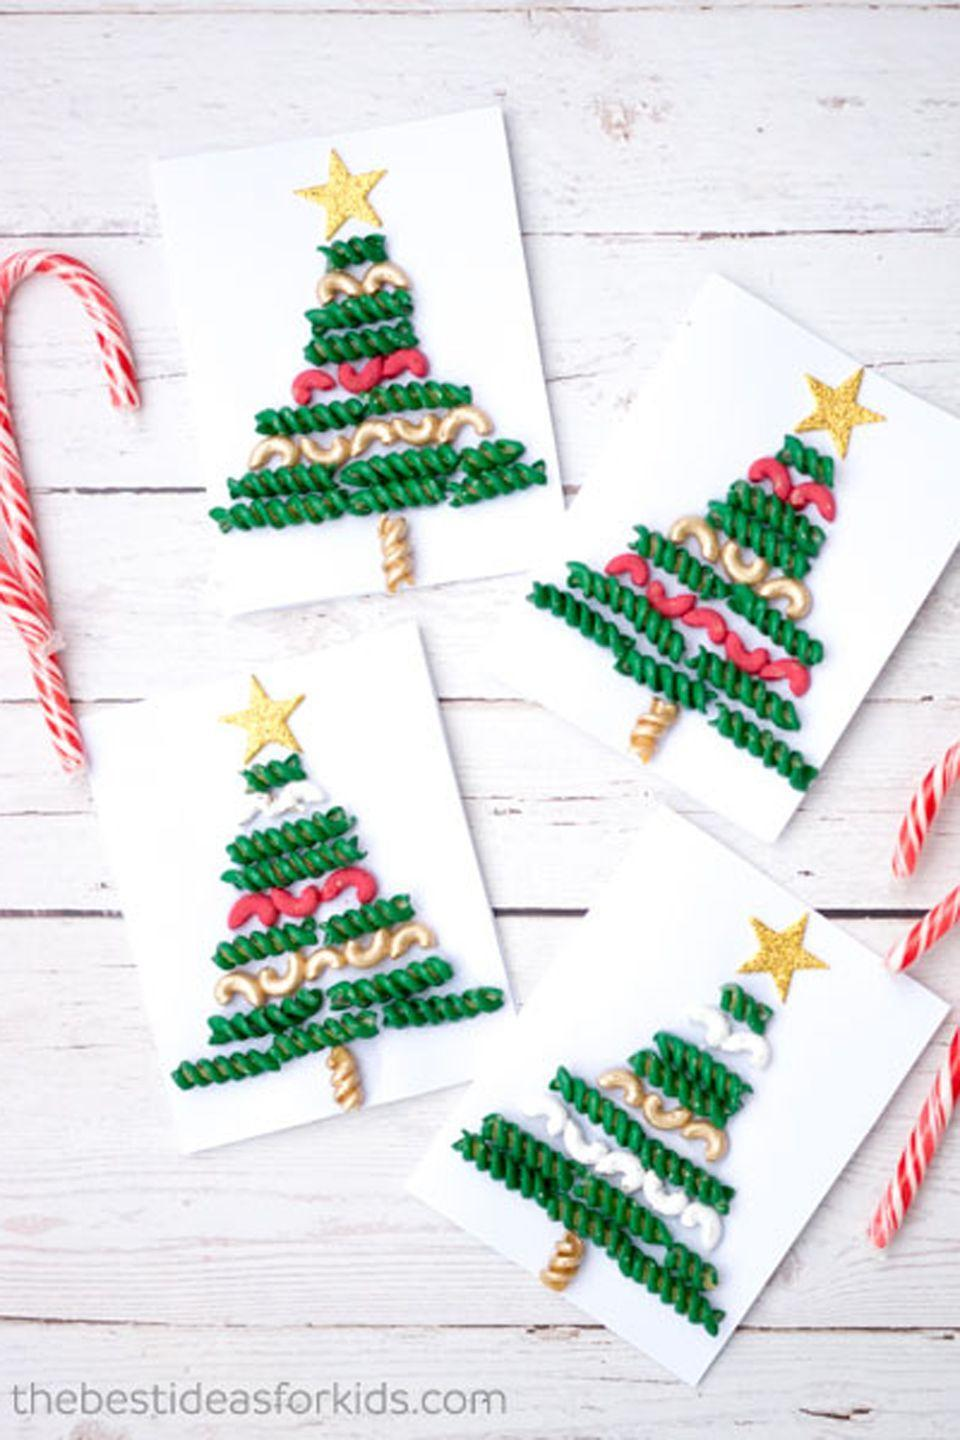 "<p><span class=""redactor-invisible-space"">Your little noodle will love designing their very own tree this Christmas.</span></p><p><strong>Get the tutorial at <a href=""https://www.thebestideasforkids.com/christmas-tree-pasta-macaroni-craft/?utm_medium=social&utm_source=pinterest&utm_campaign=tailwind_tribes&utm_content=tribes"" rel=""nofollow noopener"" target=""_blank"" data-ylk=""slk:The Best Ideas For Kids"" class=""link rapid-noclick-resp"">The Best Ideas For Kids</a>.</strong></p>"